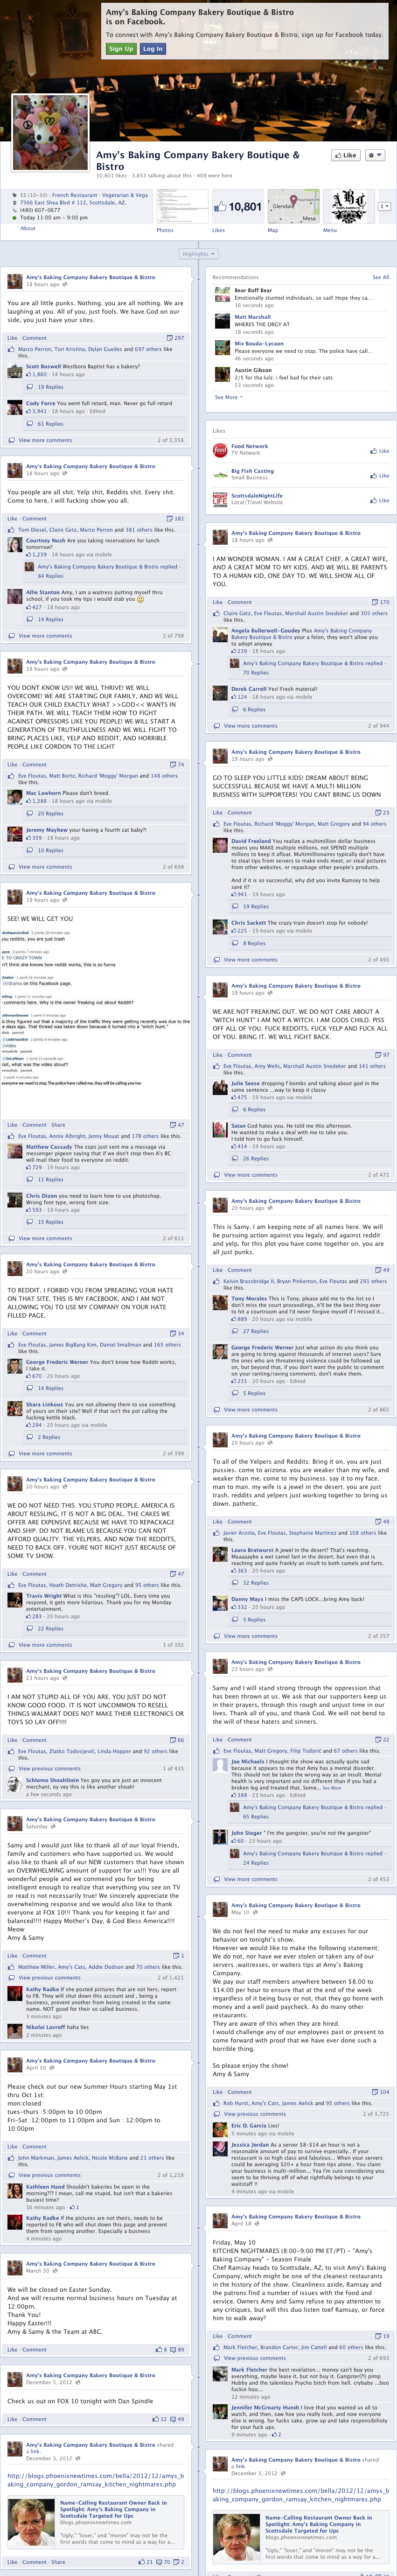 Amys Baking Company Facebook Case Study: How Not to Manage Your Social Media   Amys Baking Company